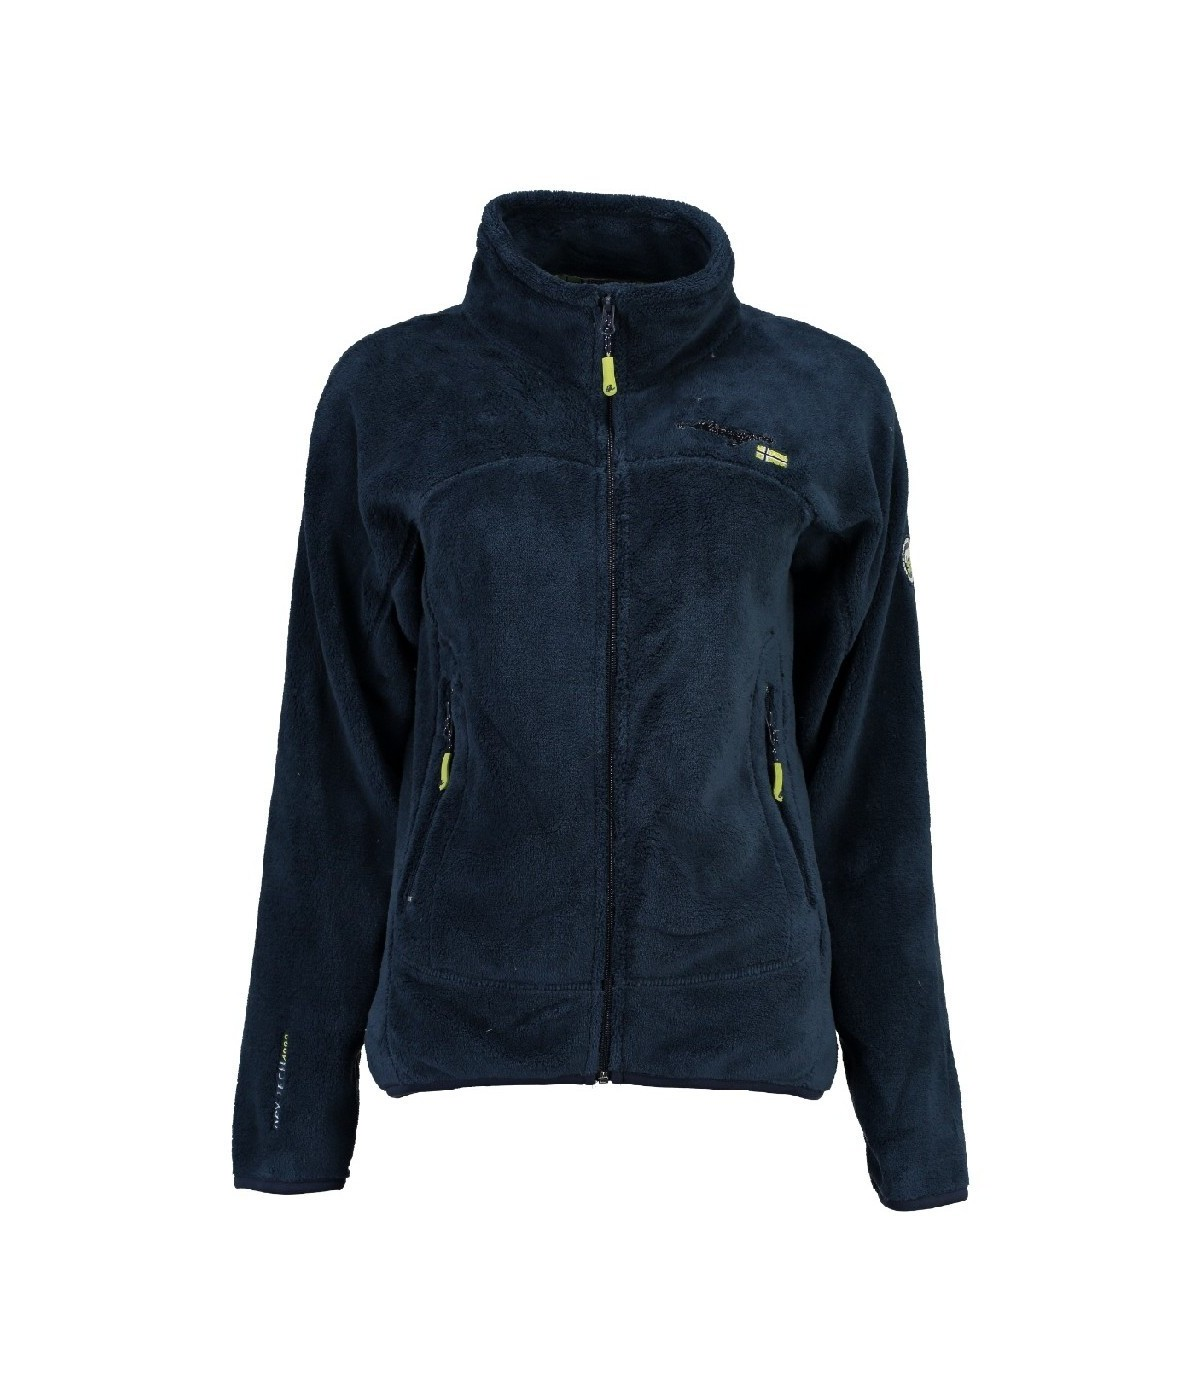 Polaire Fille Geographical Norway Unicorne Marine